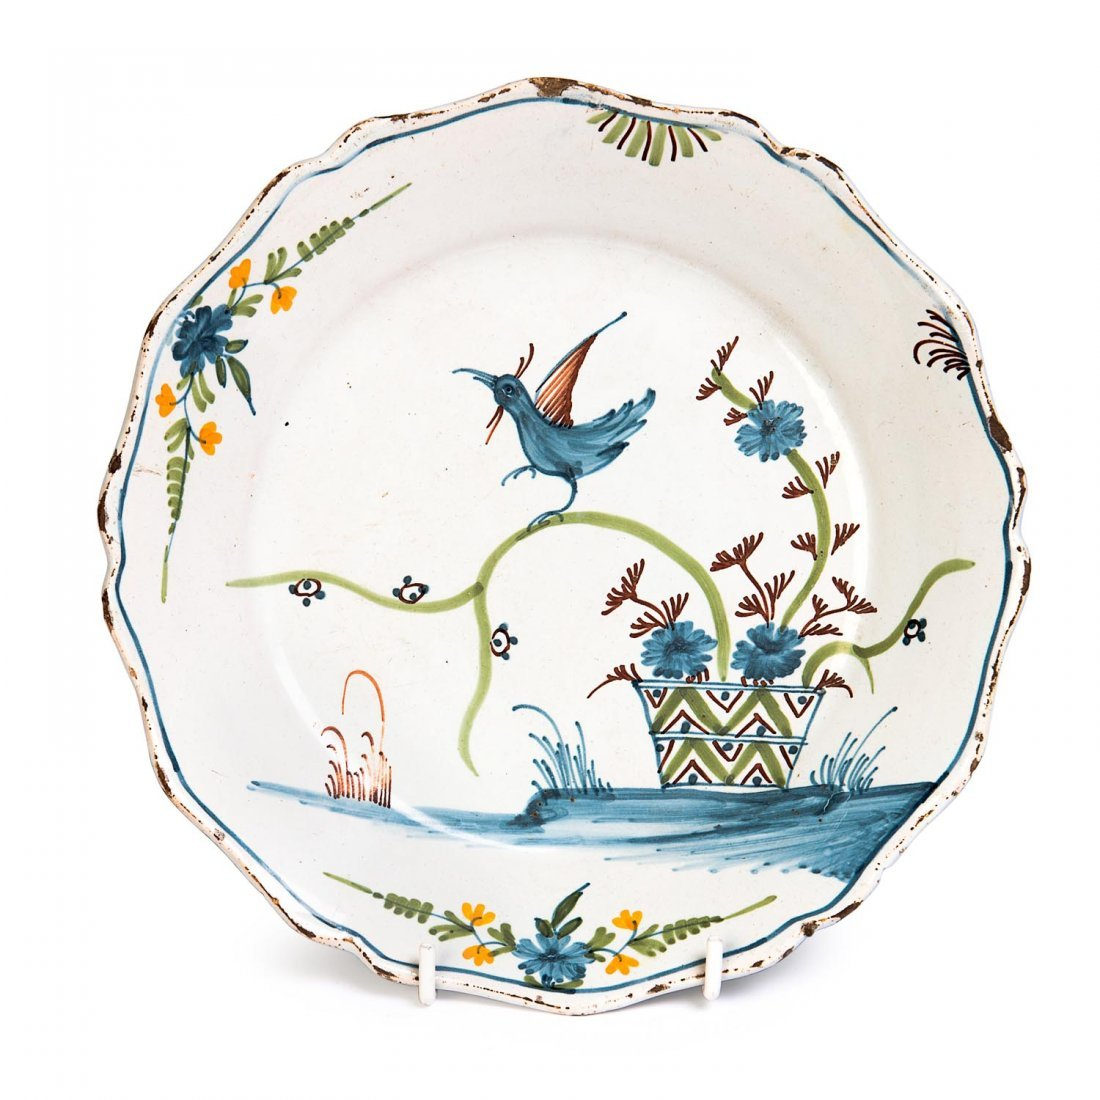 A French faience tin glazed earthenware plate, 18th